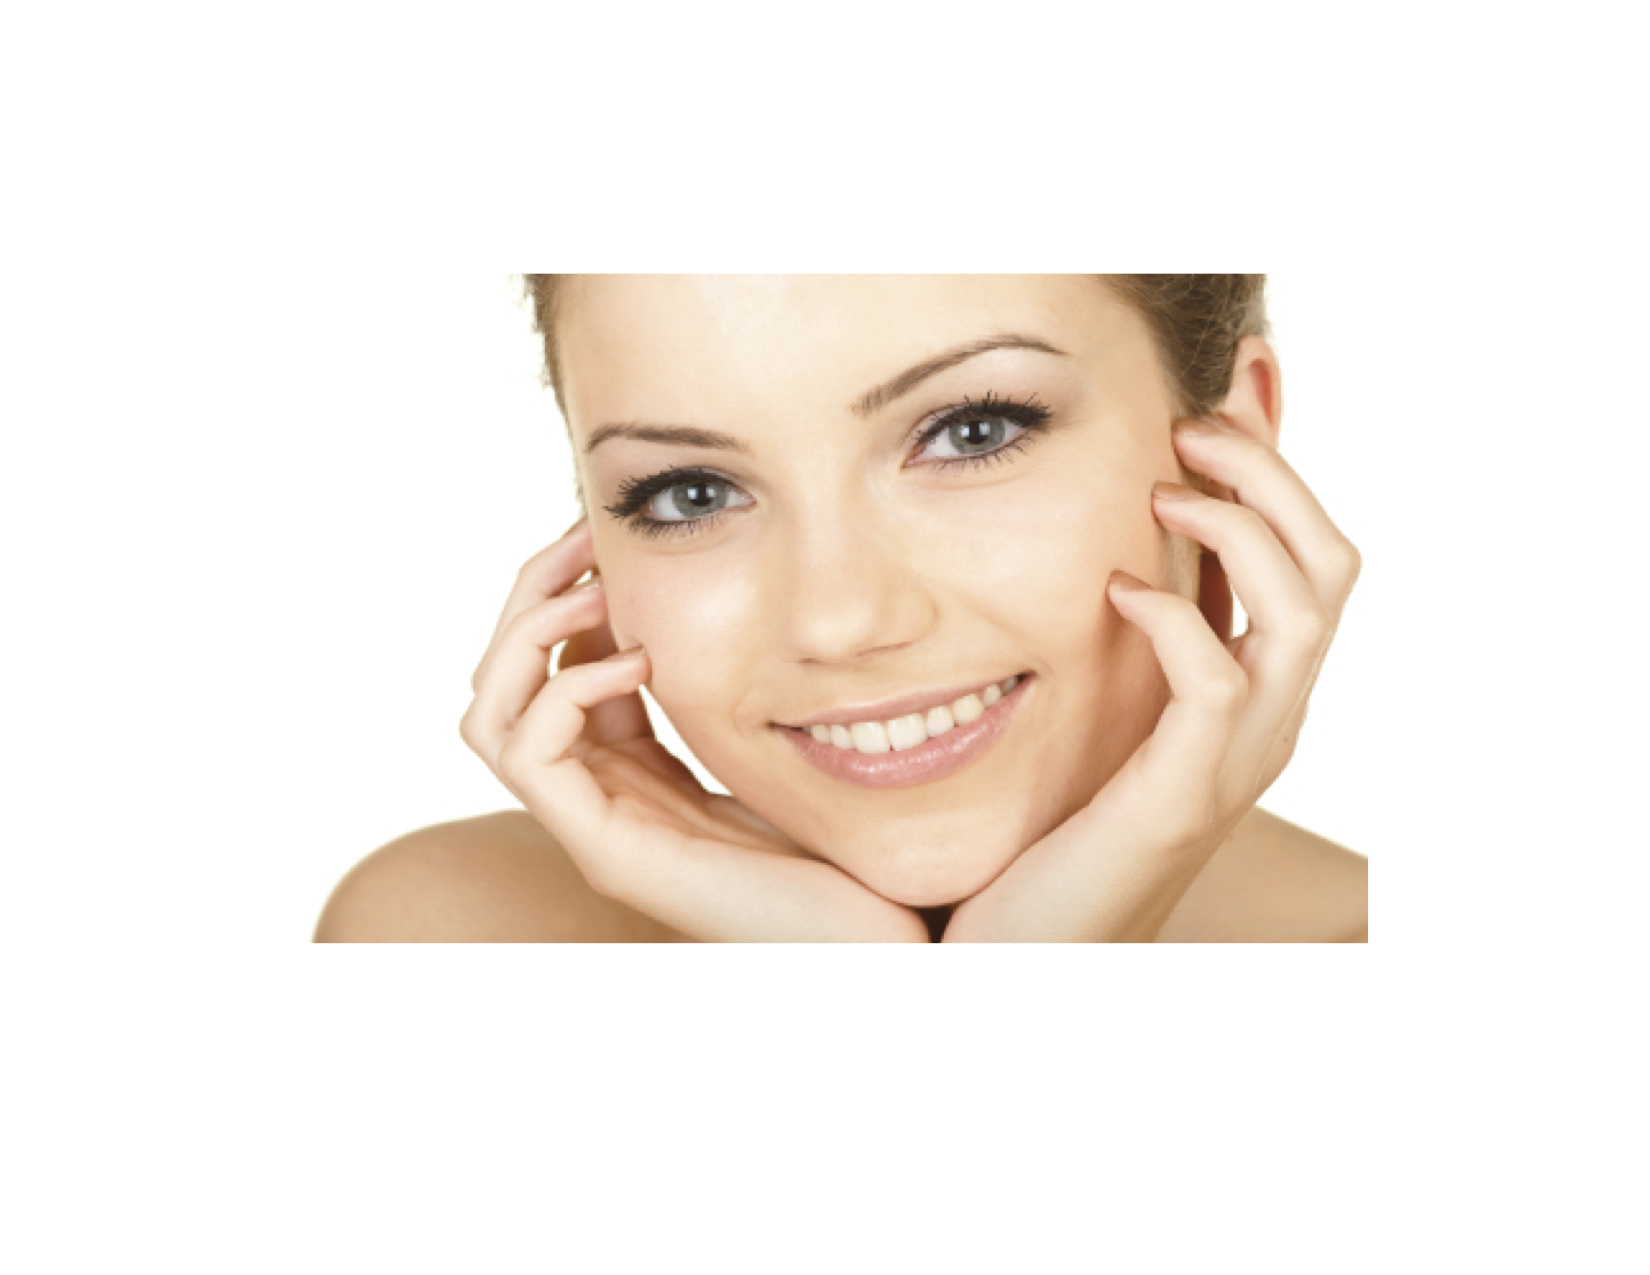 New York Specialists In Medical Weight Control Facial Aesthetics Rated Best Weightloss Center In New York City Call Us At 212 581 9532 718 358 3310 Obesity Dieting Weightloss Botox Fillers